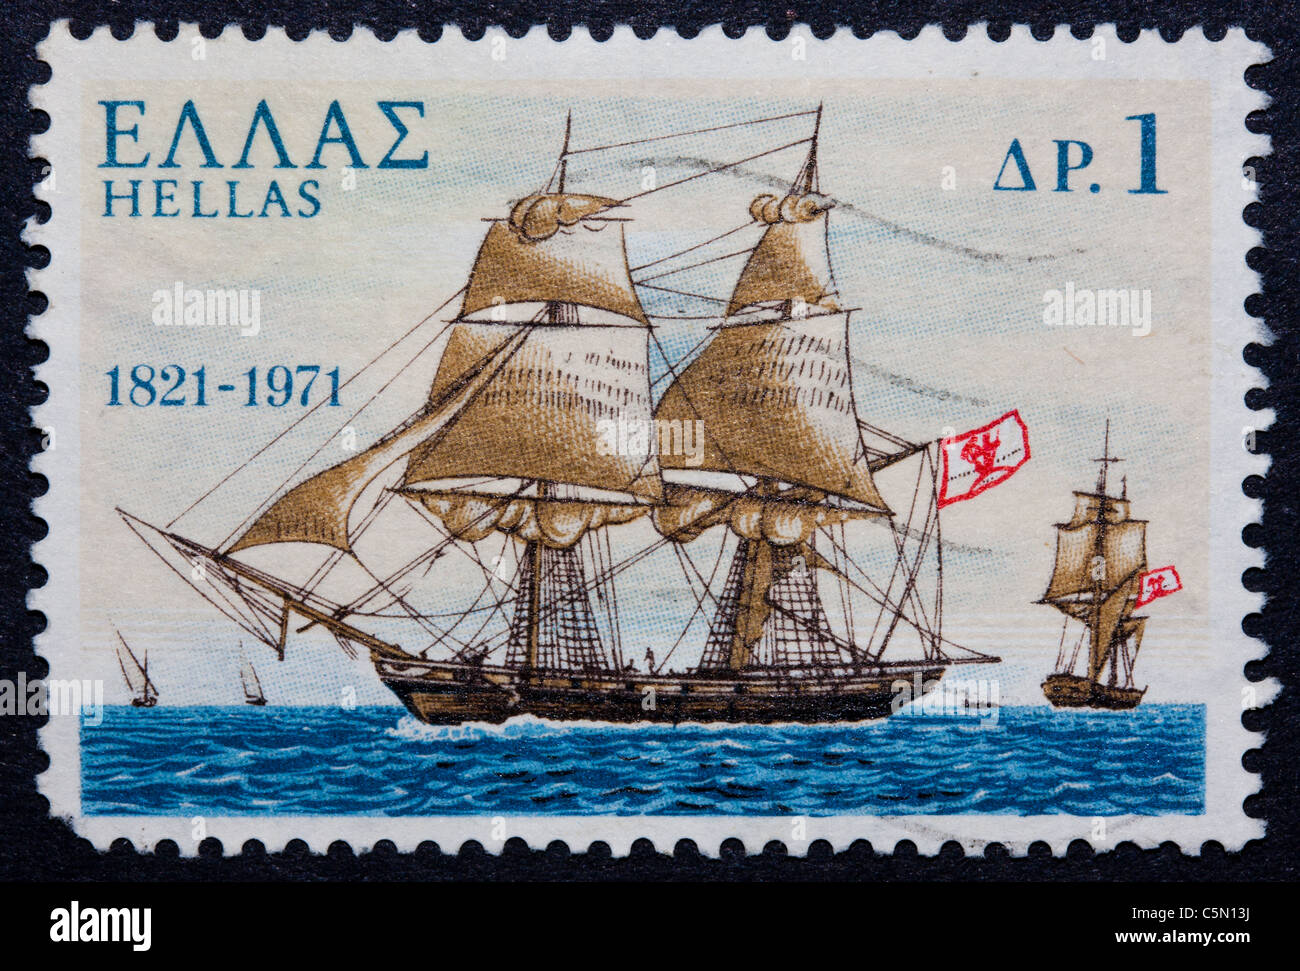 A postmarked Greek stamp showing a ship with sails - Stock Image